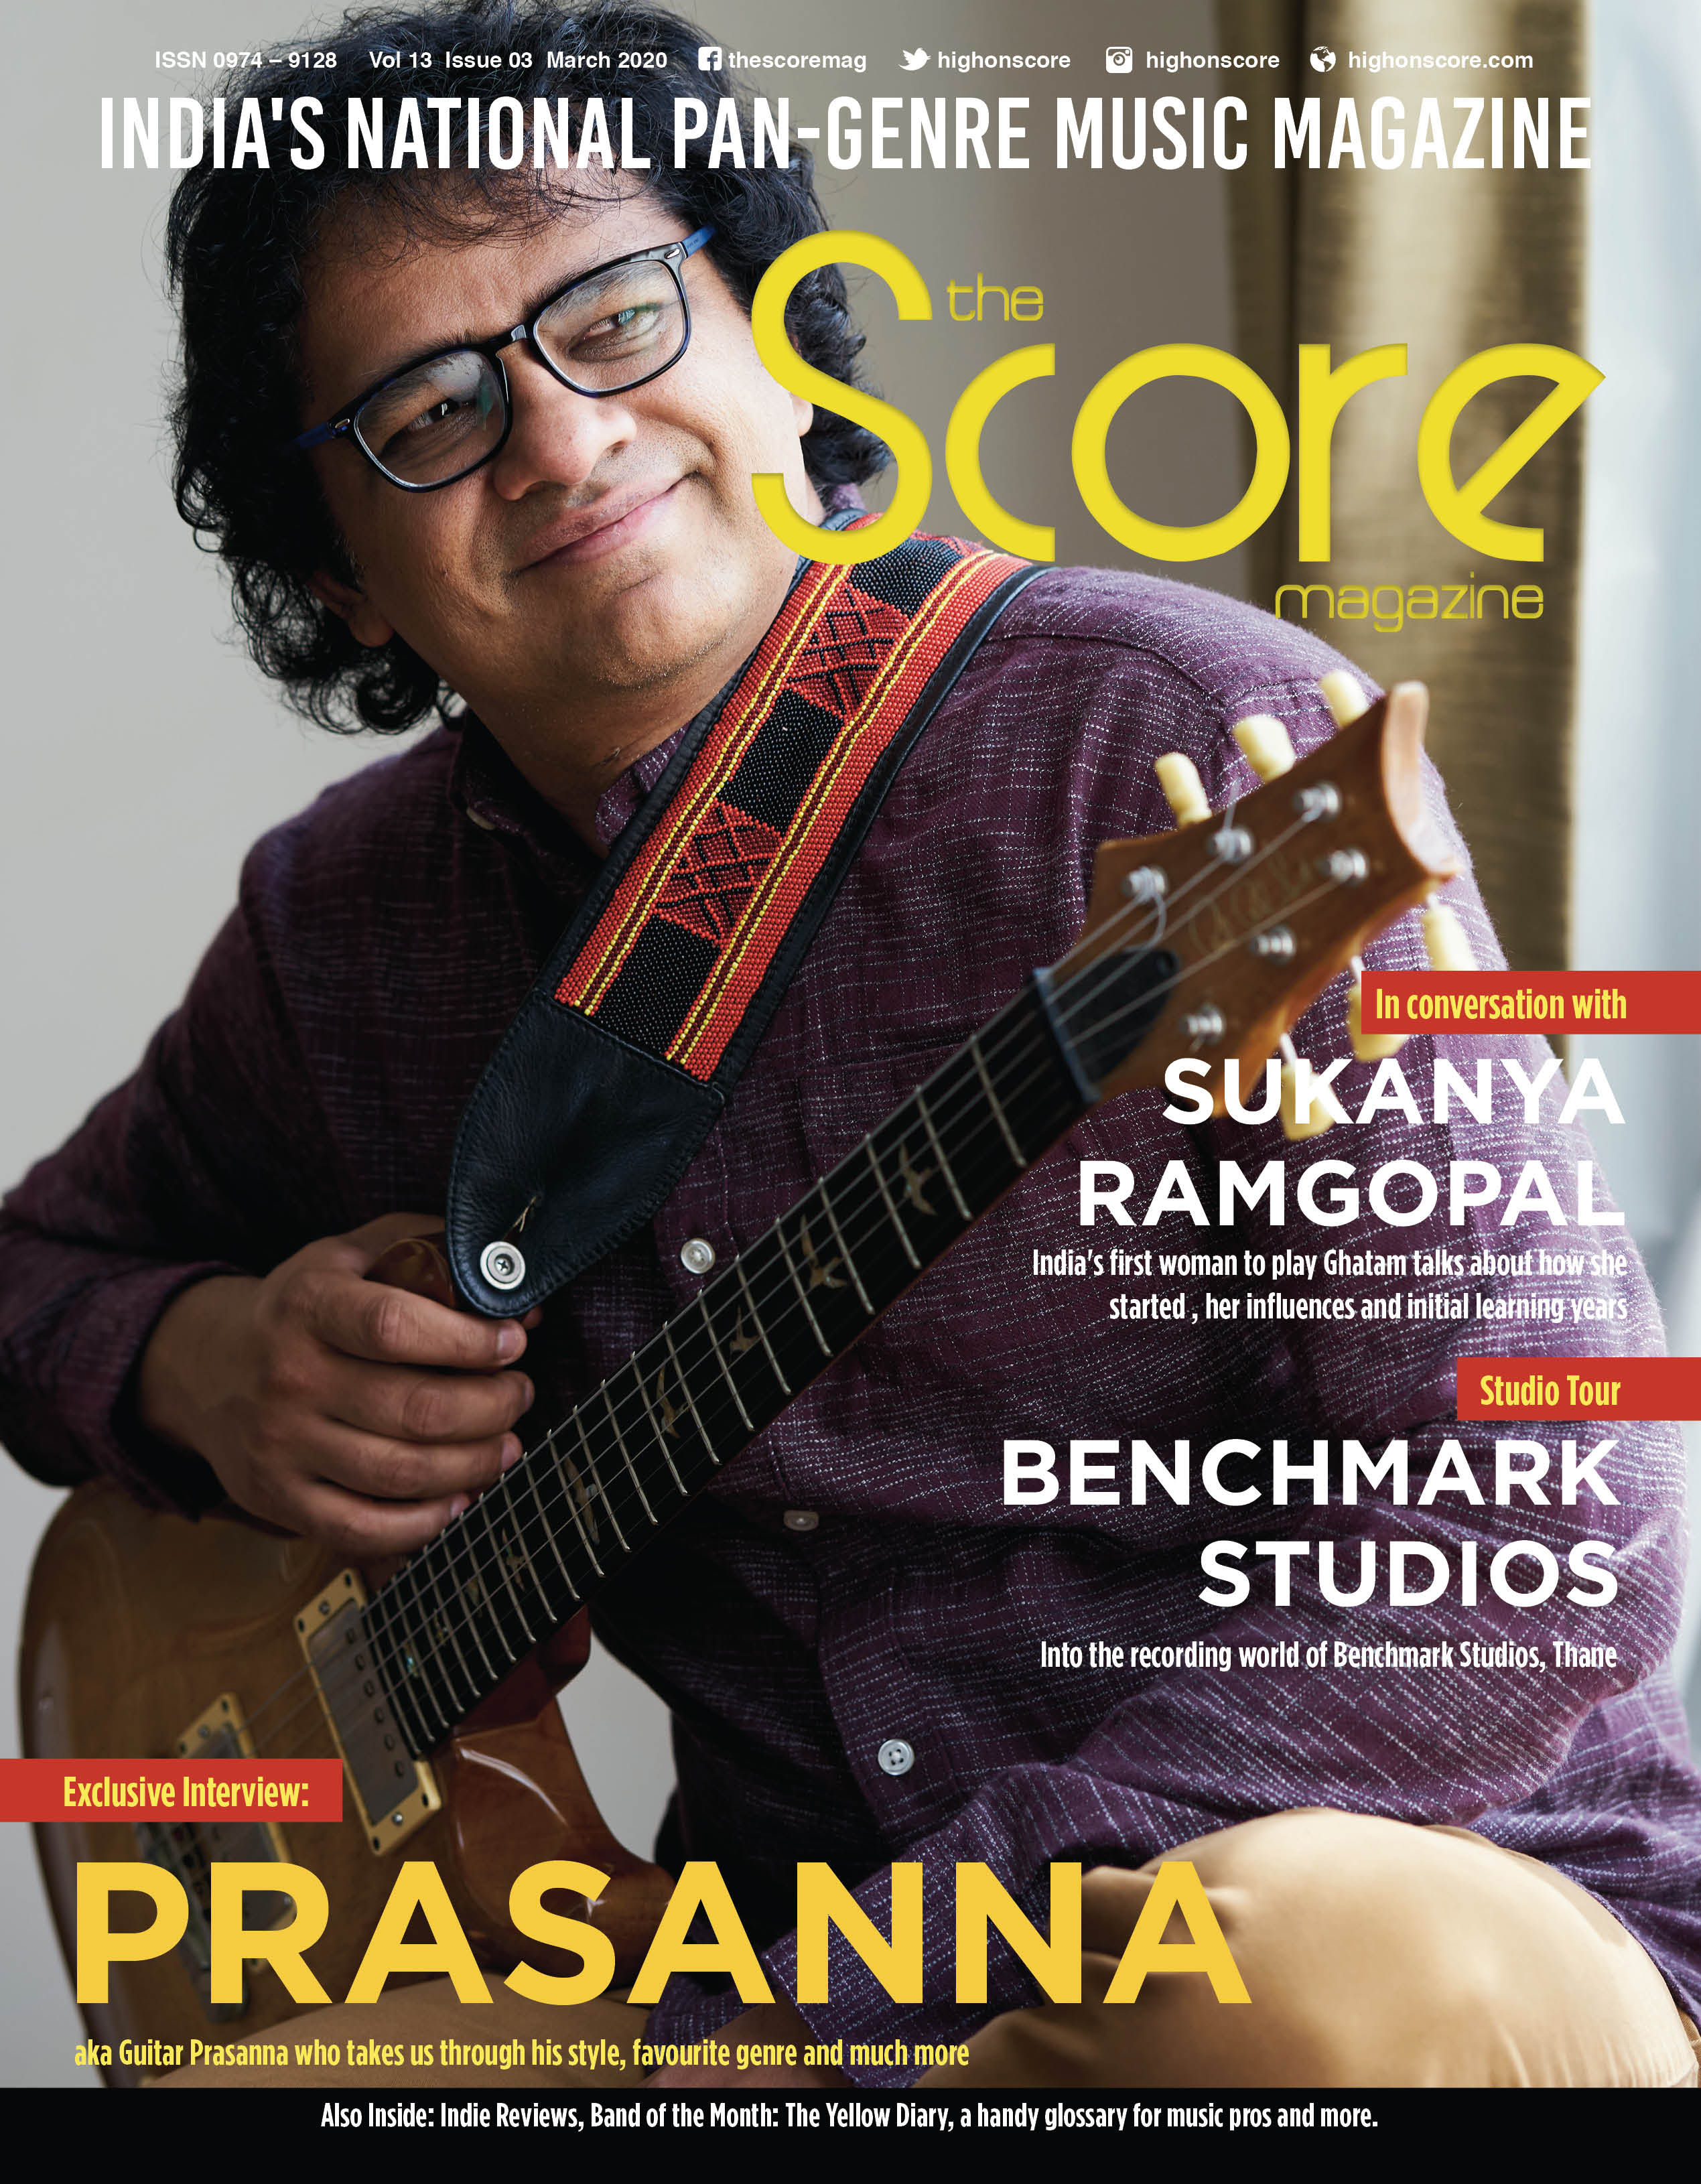 March 2020 issue featuring Guitar Prasanna on the cover!